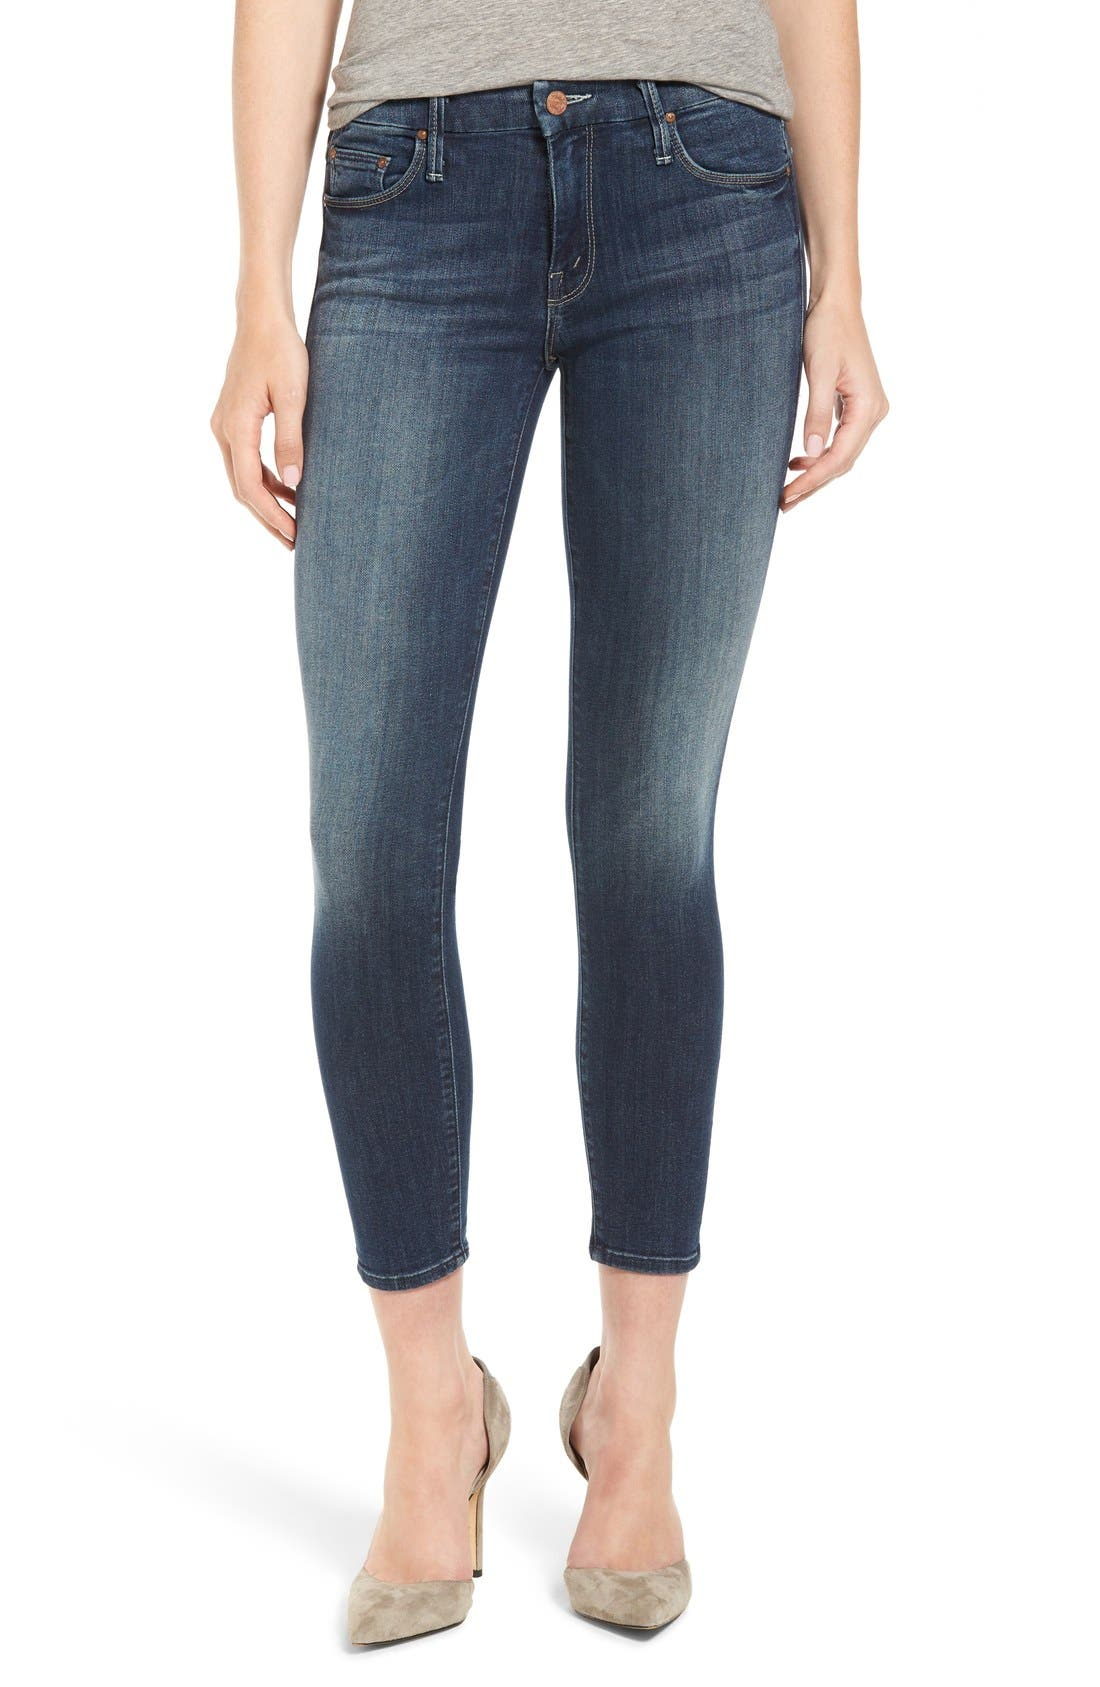 'The Looker' Crop Skinny Jeans,                             Main thumbnail 1, color,                             439